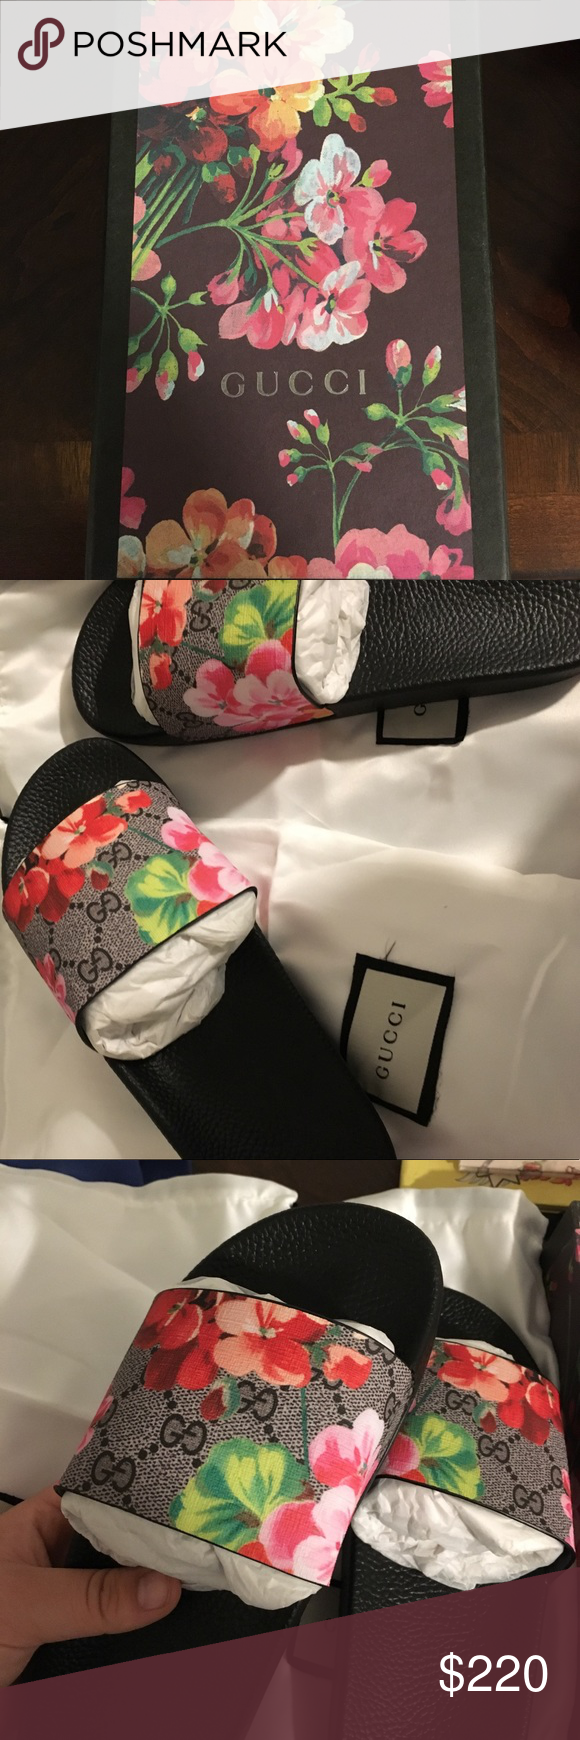 c7d8f96ea Gucci GG Blooms Supreme Slide Sandal Brand new Gucci Blooms slides! Never  worn before. Comes with box